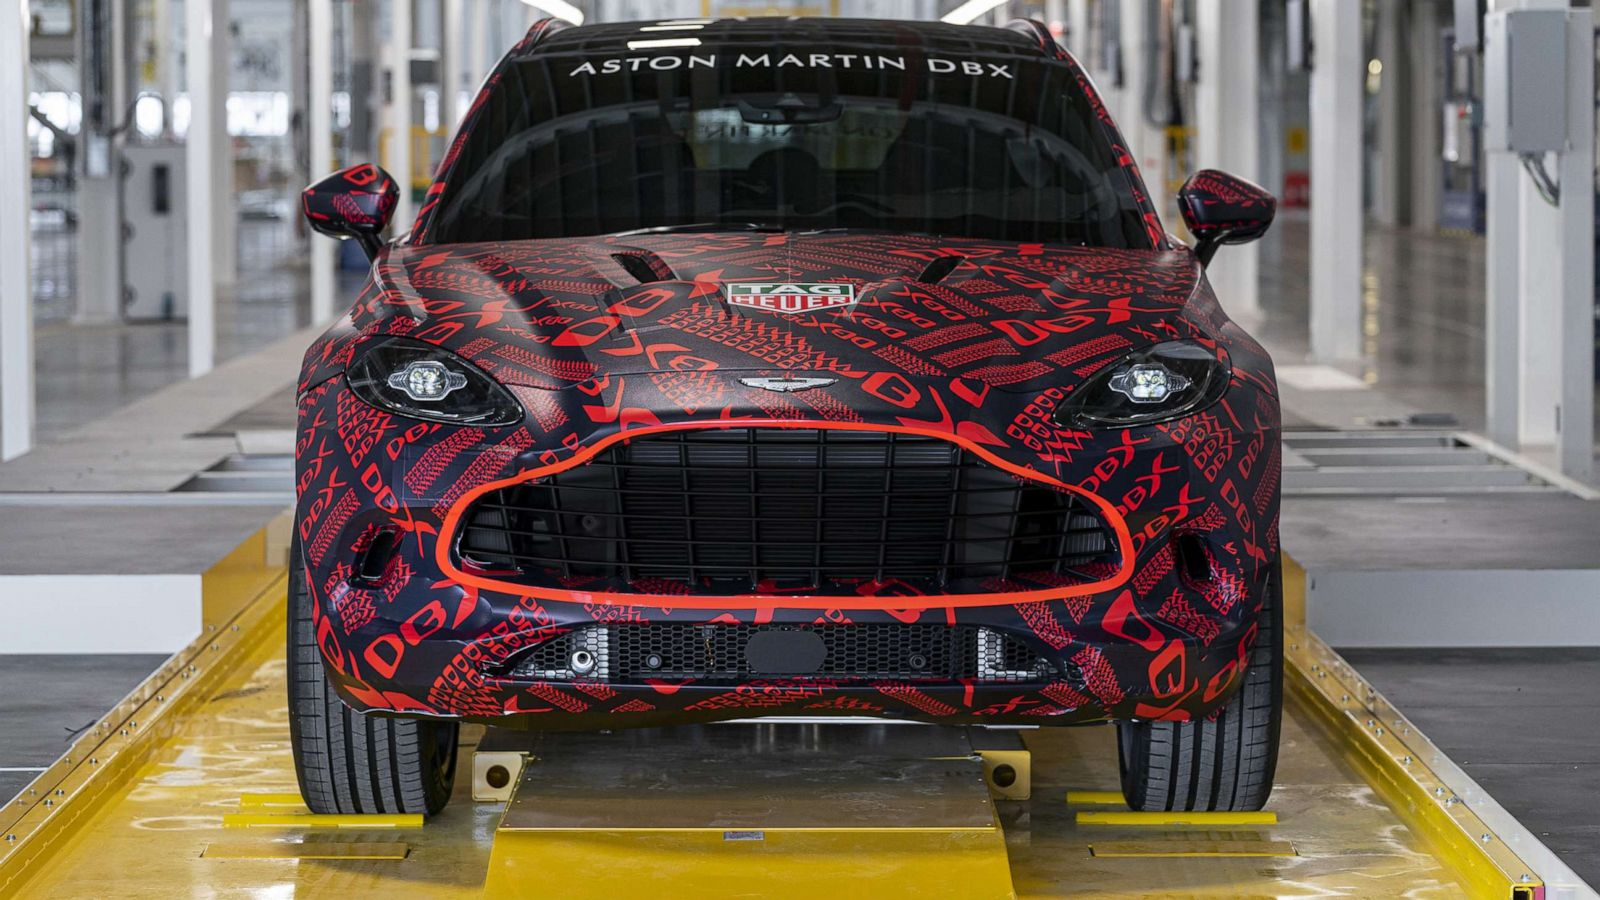 The Dbx Suv Could Be Aston Martin S Most Important Car Ever Abc News